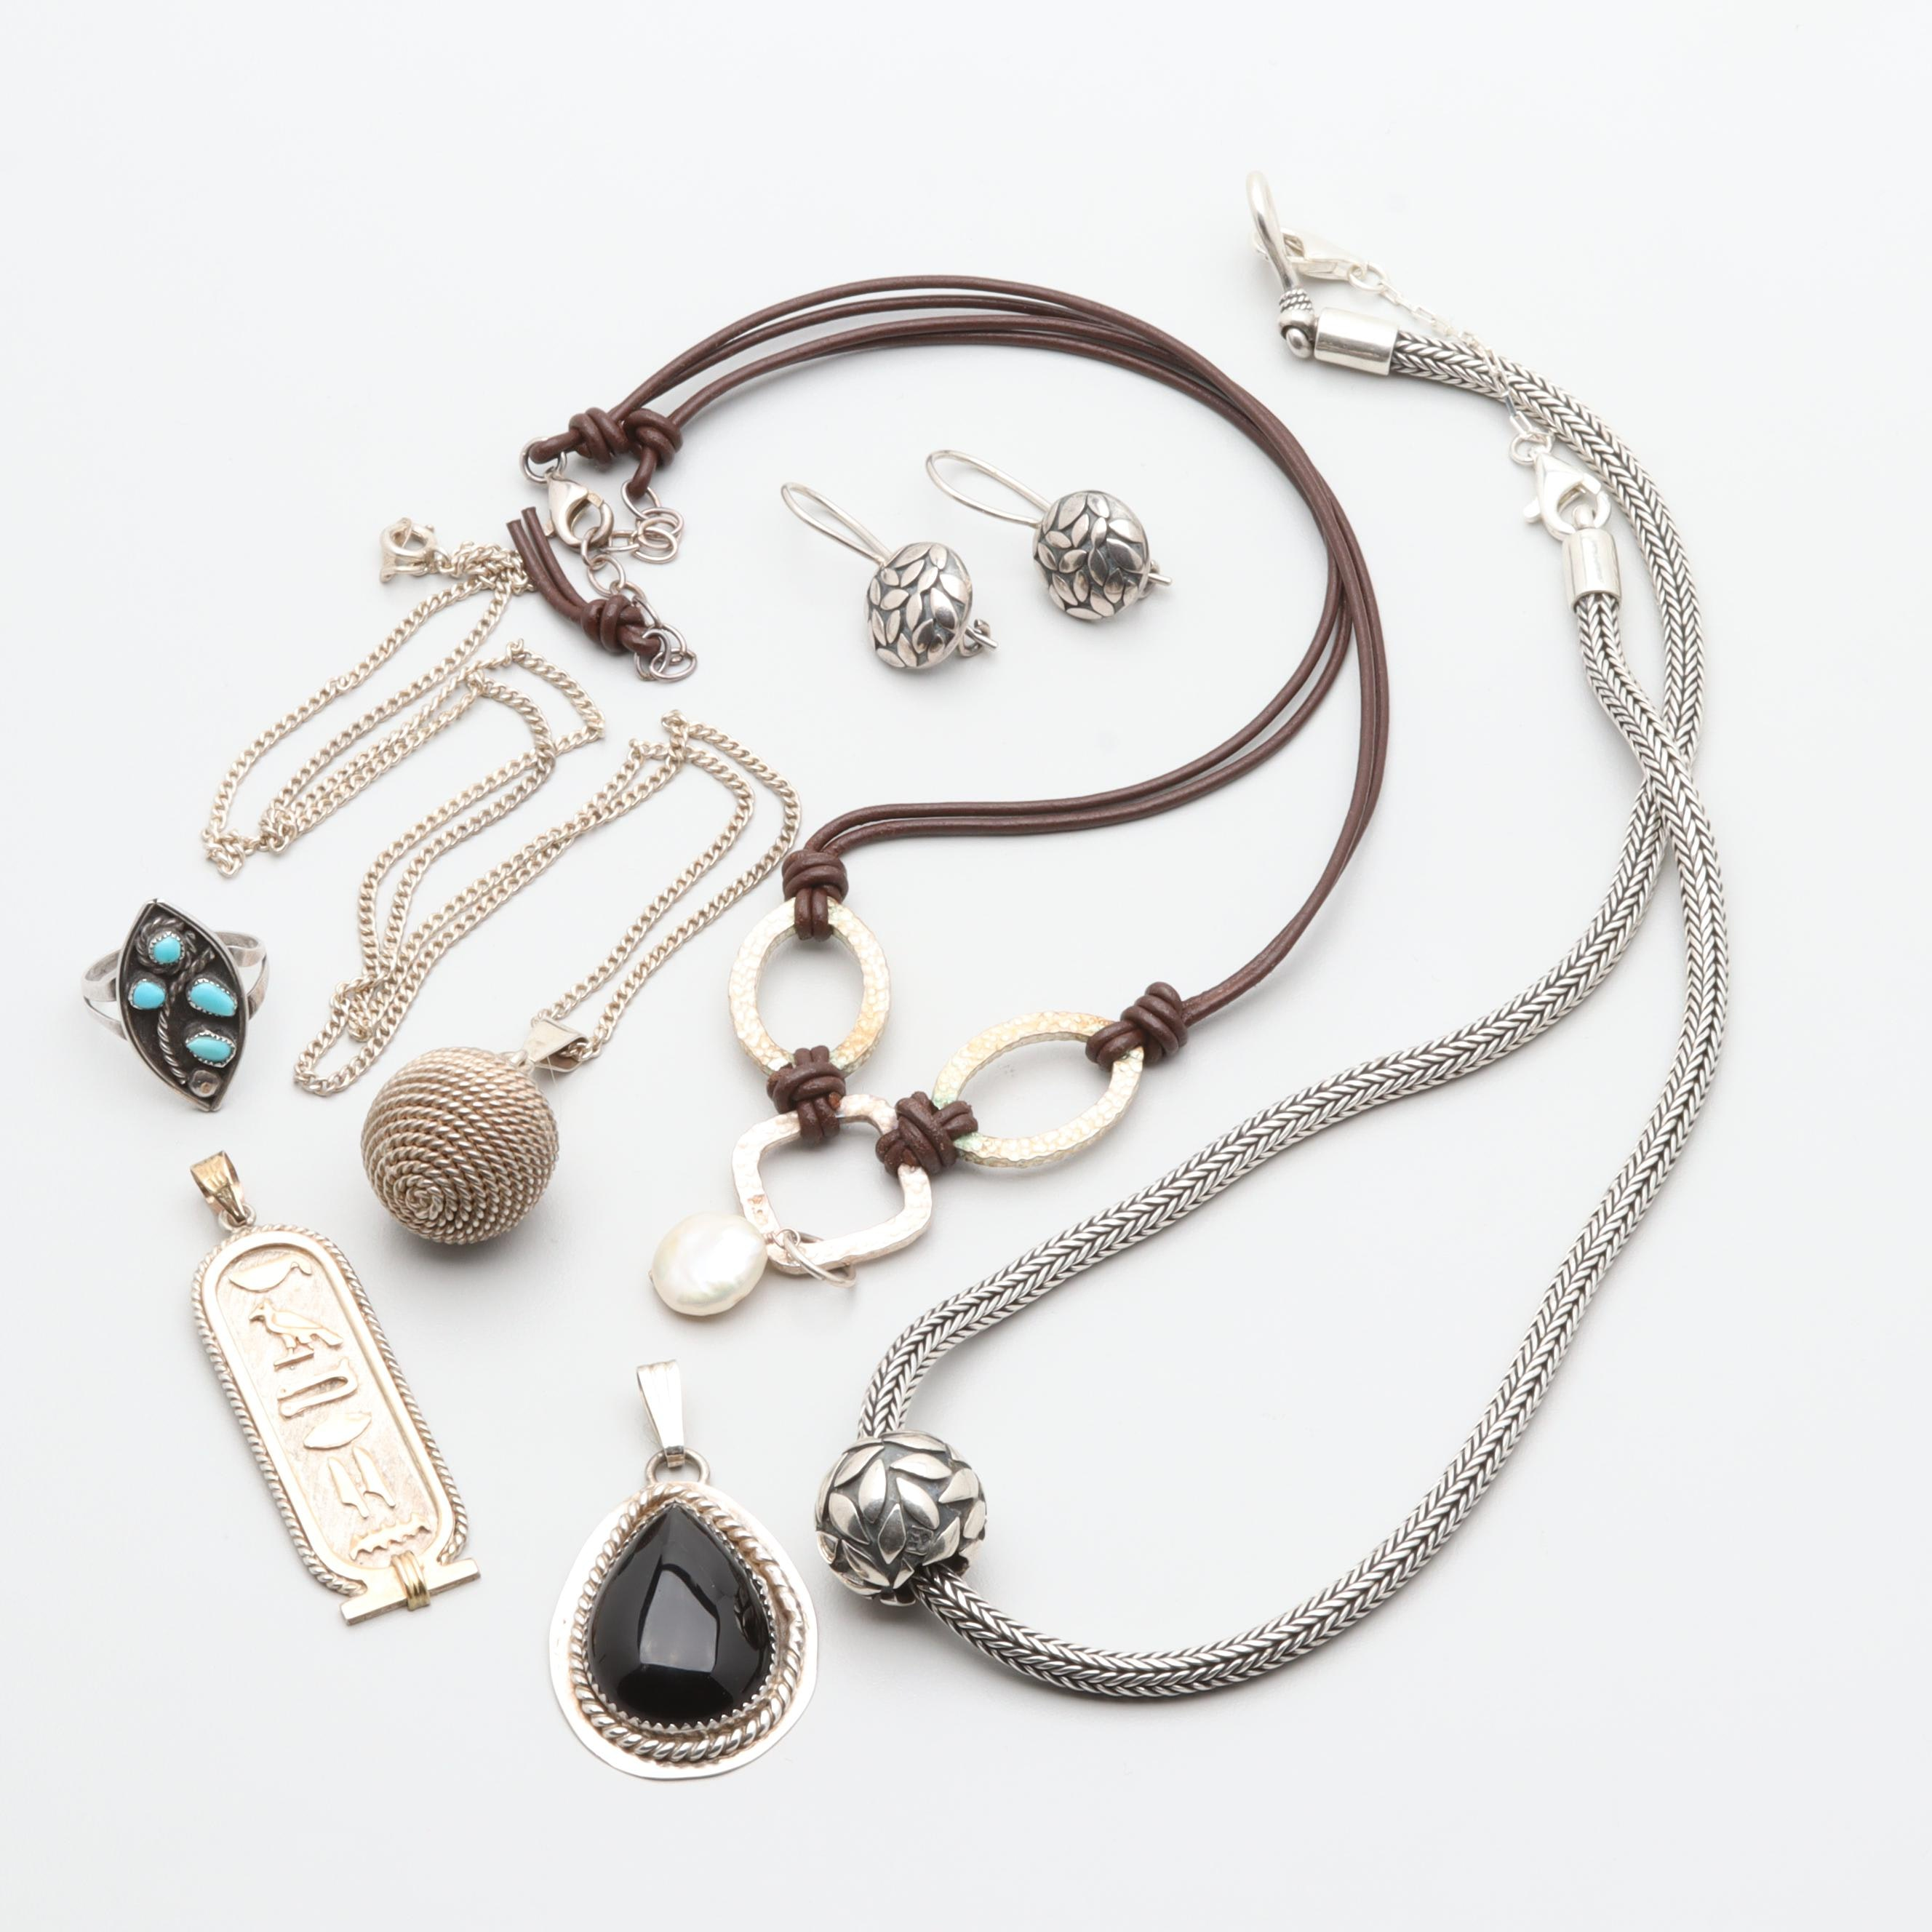 Sterling Silver Jewelry Assortment Including Black Onyx, Cultured Pearl and More